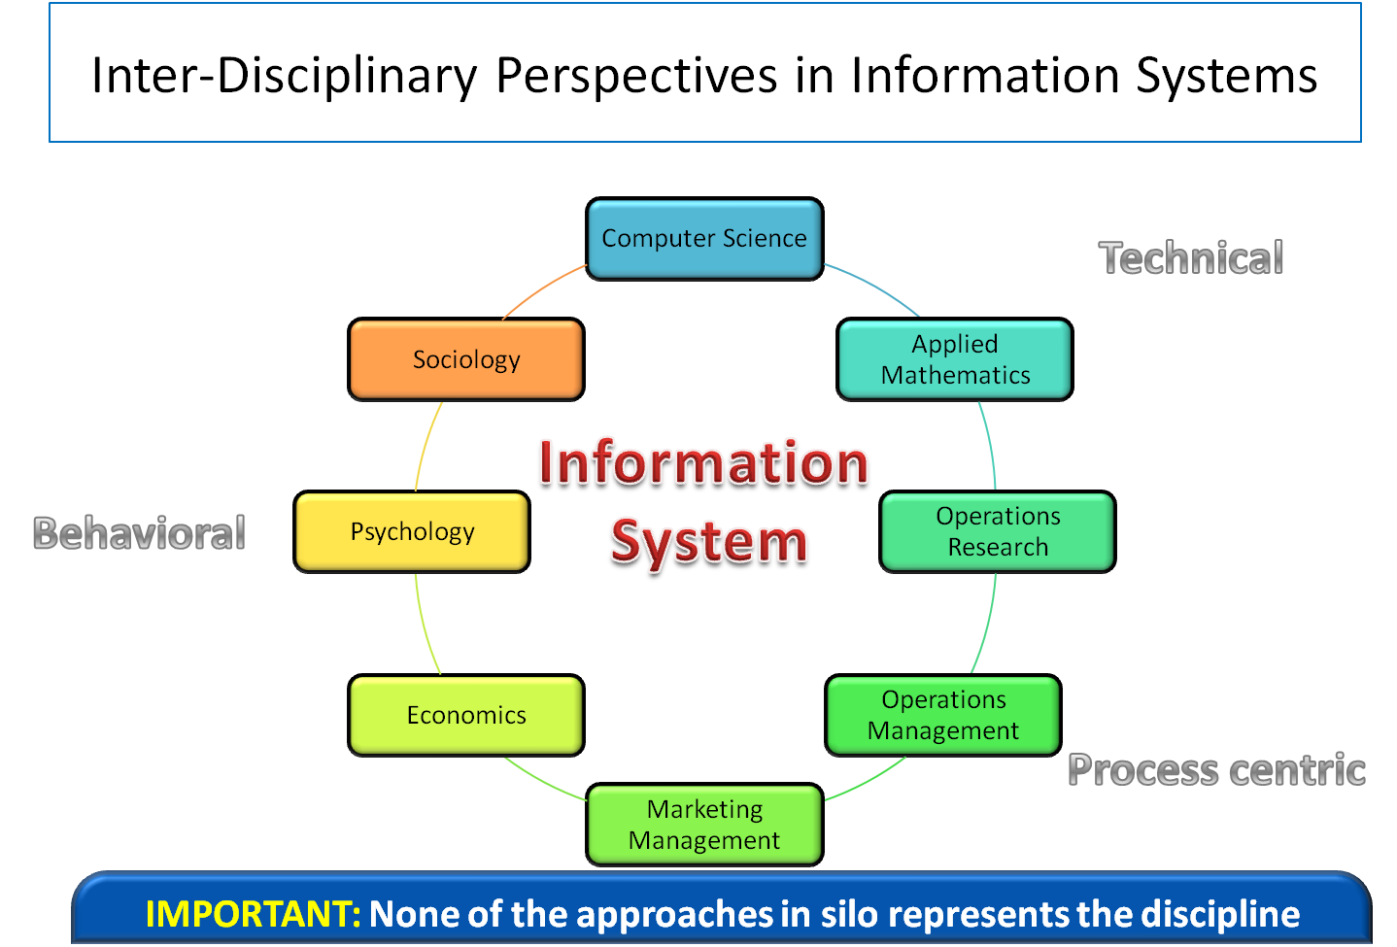 basic role of information systems Information systems cannot be ignored by managers because they play such a critical role in contemporary organizations digital technology is transforming business organizations the entire cash flow of most fortune 500 companies is linked to information systems directly affect how managers.